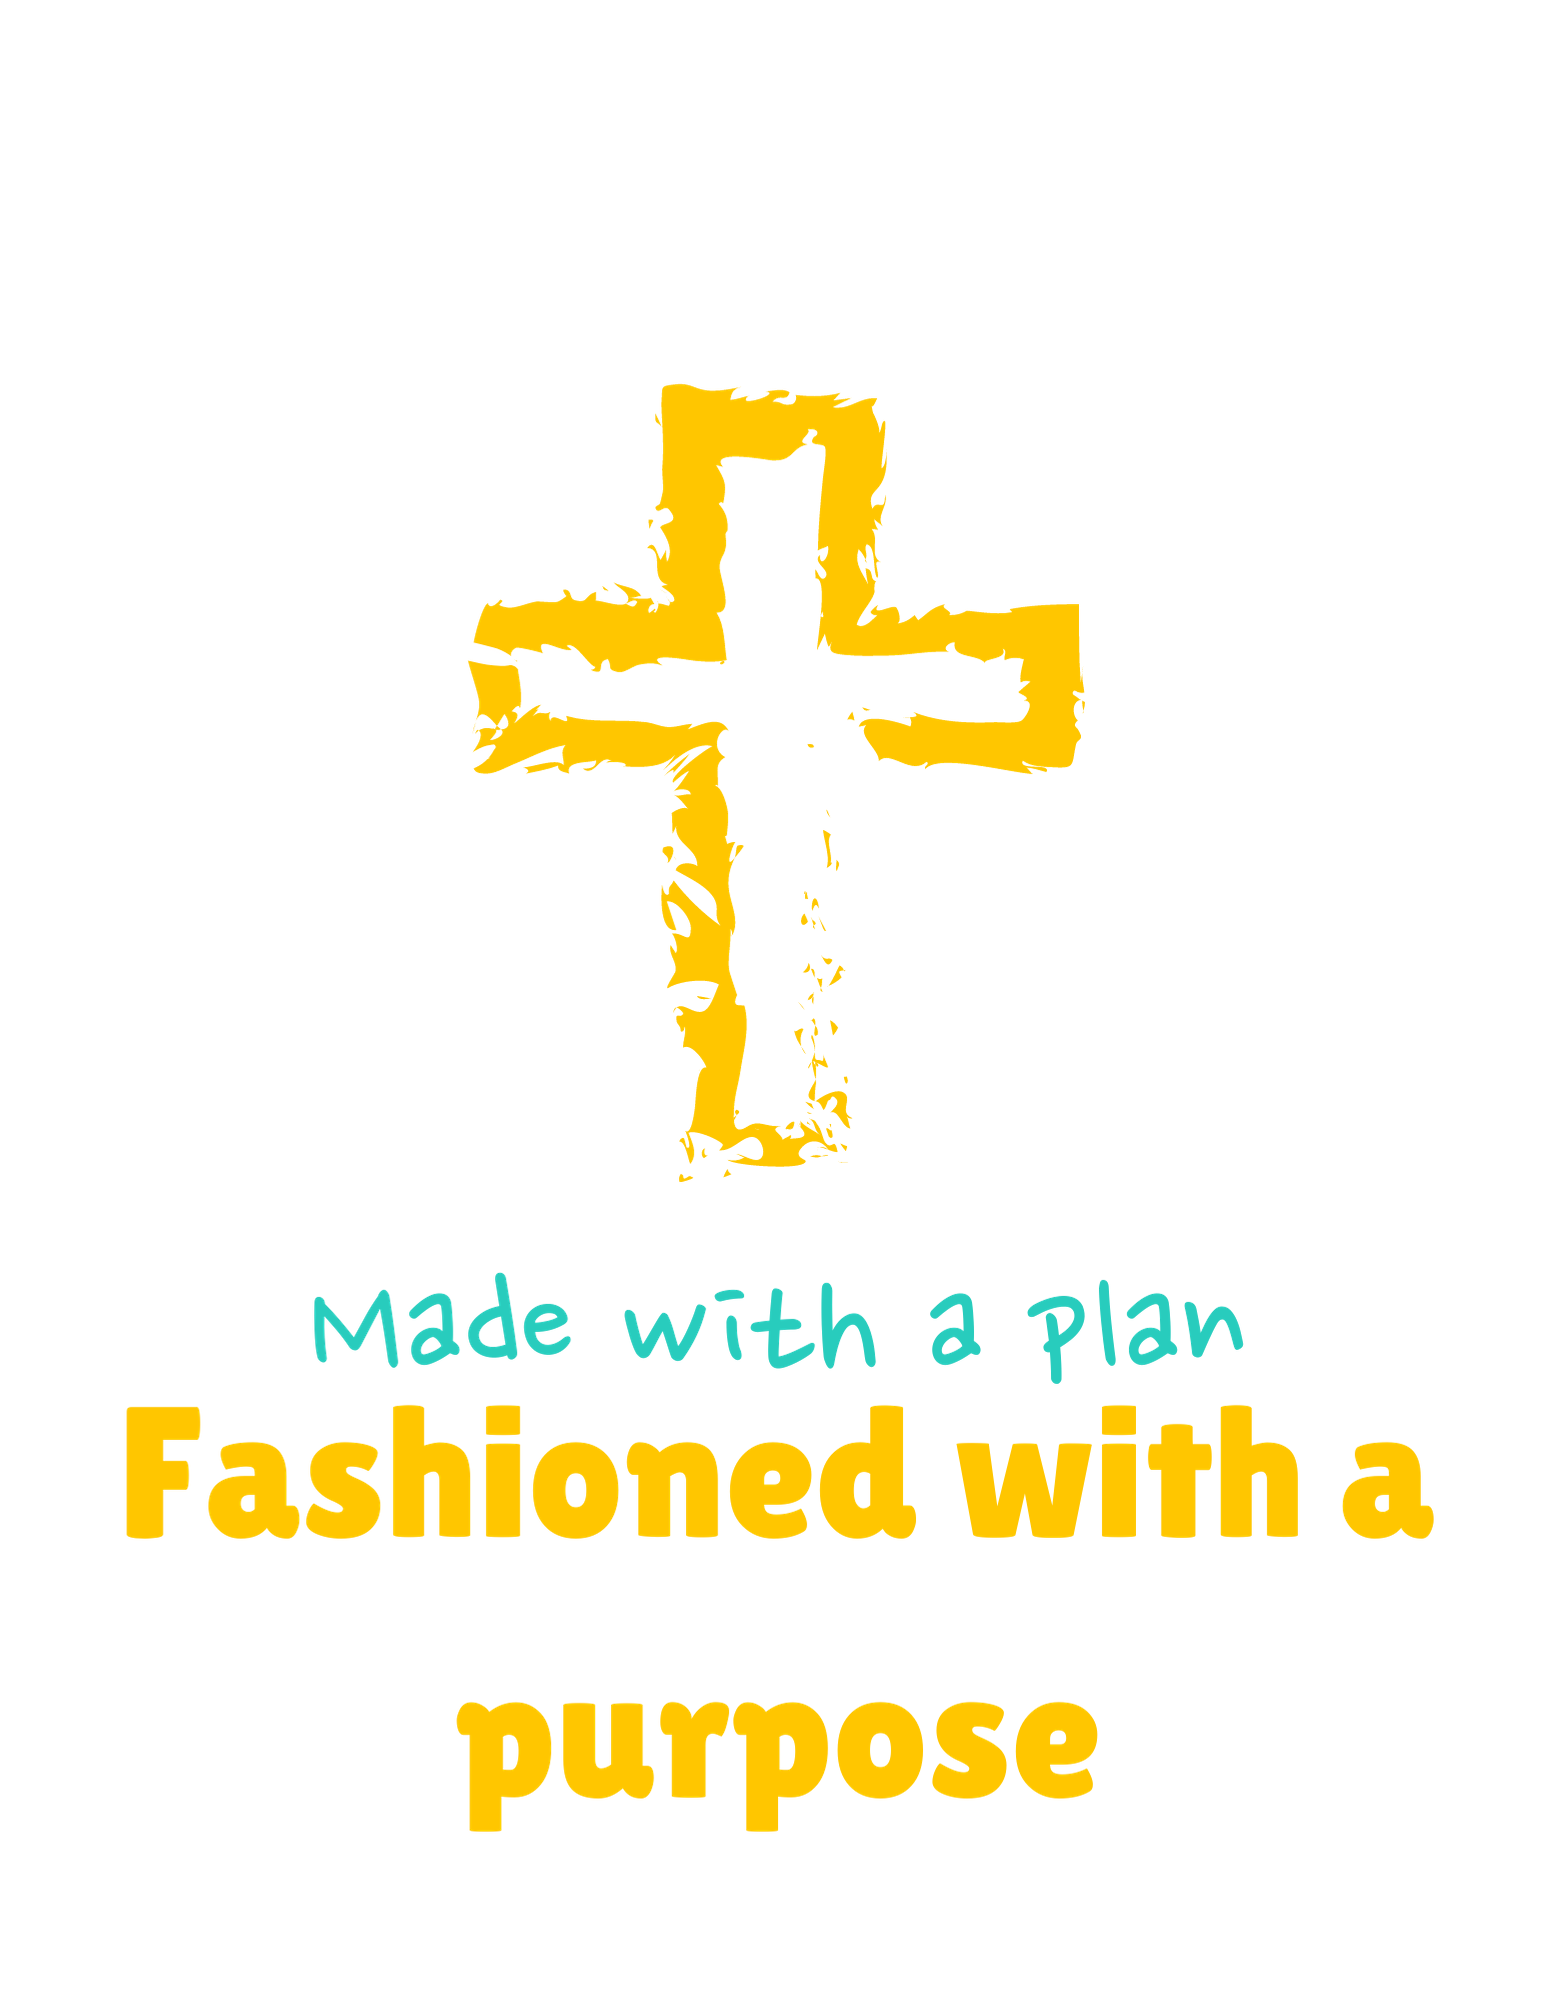 Made with a plan, Fashioned with a Purpose